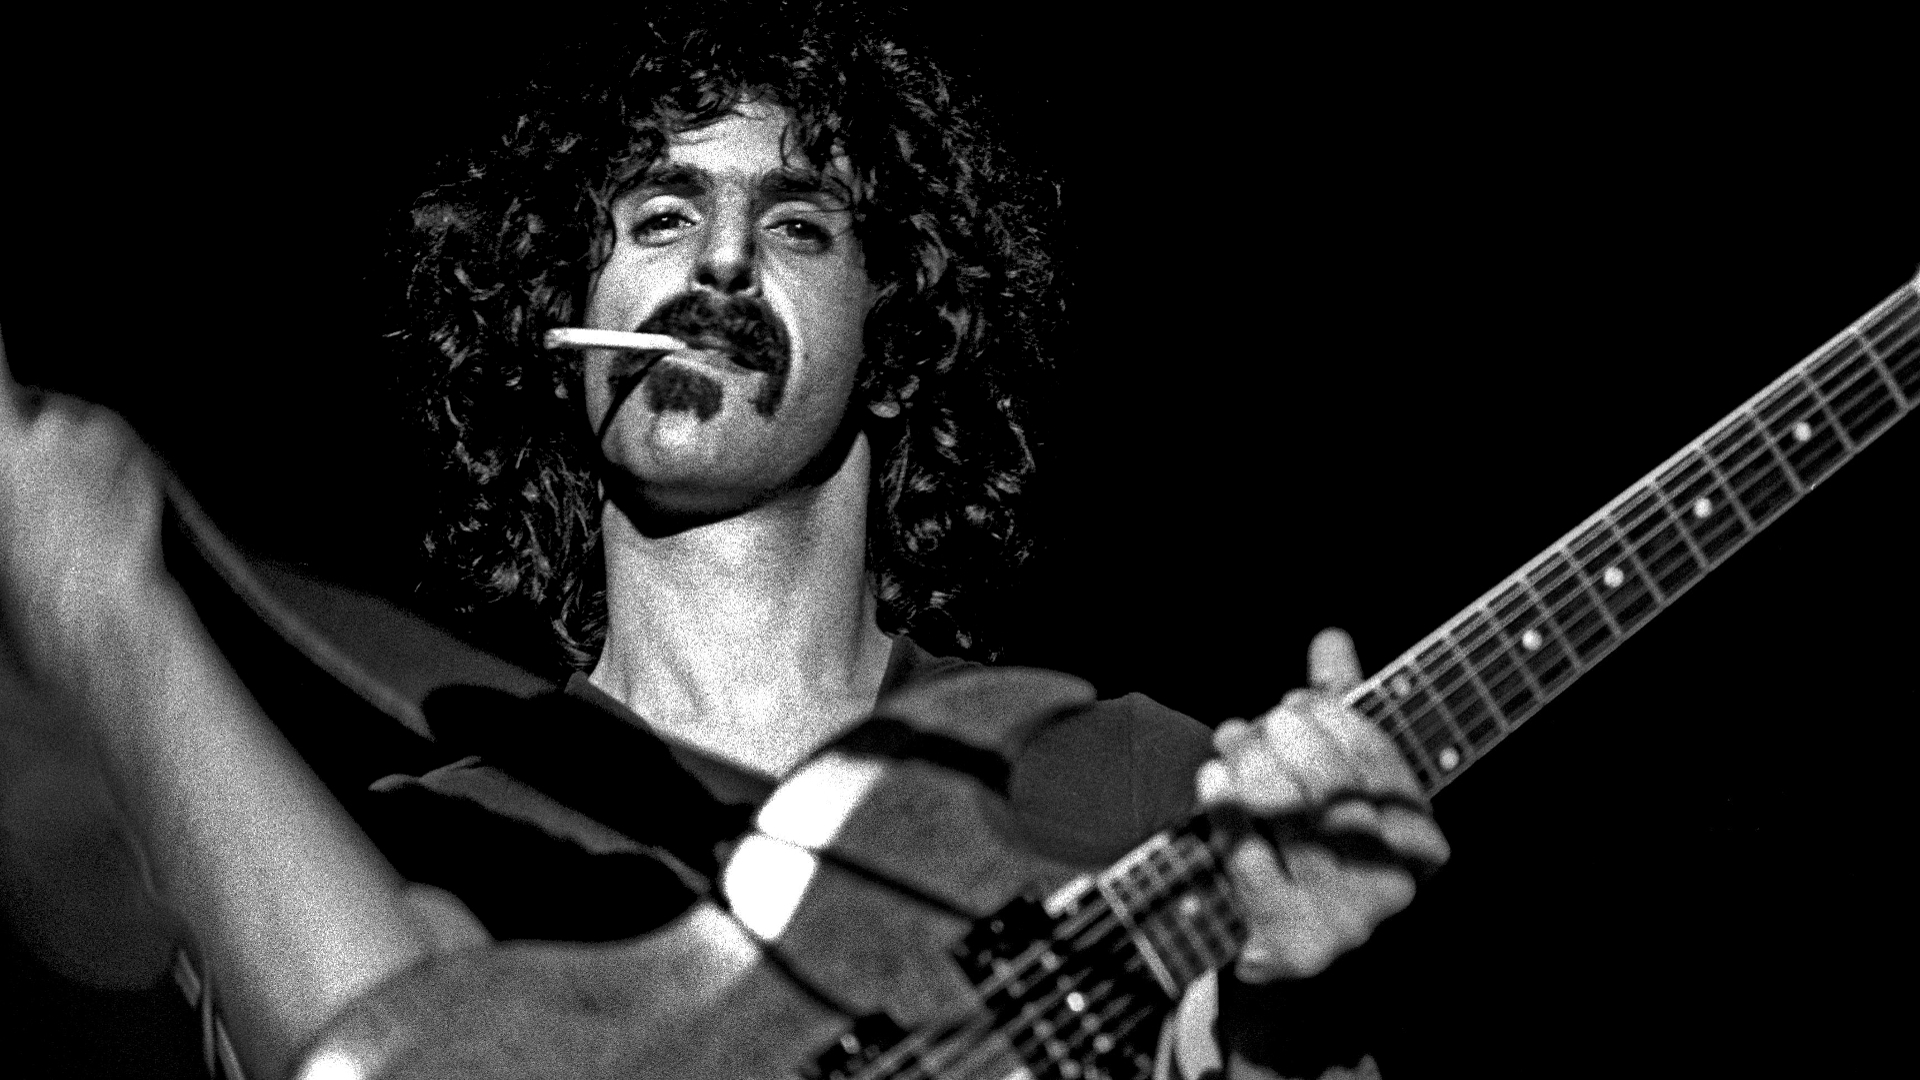 Frank Zappa Wallpaper 1920x1080 62508